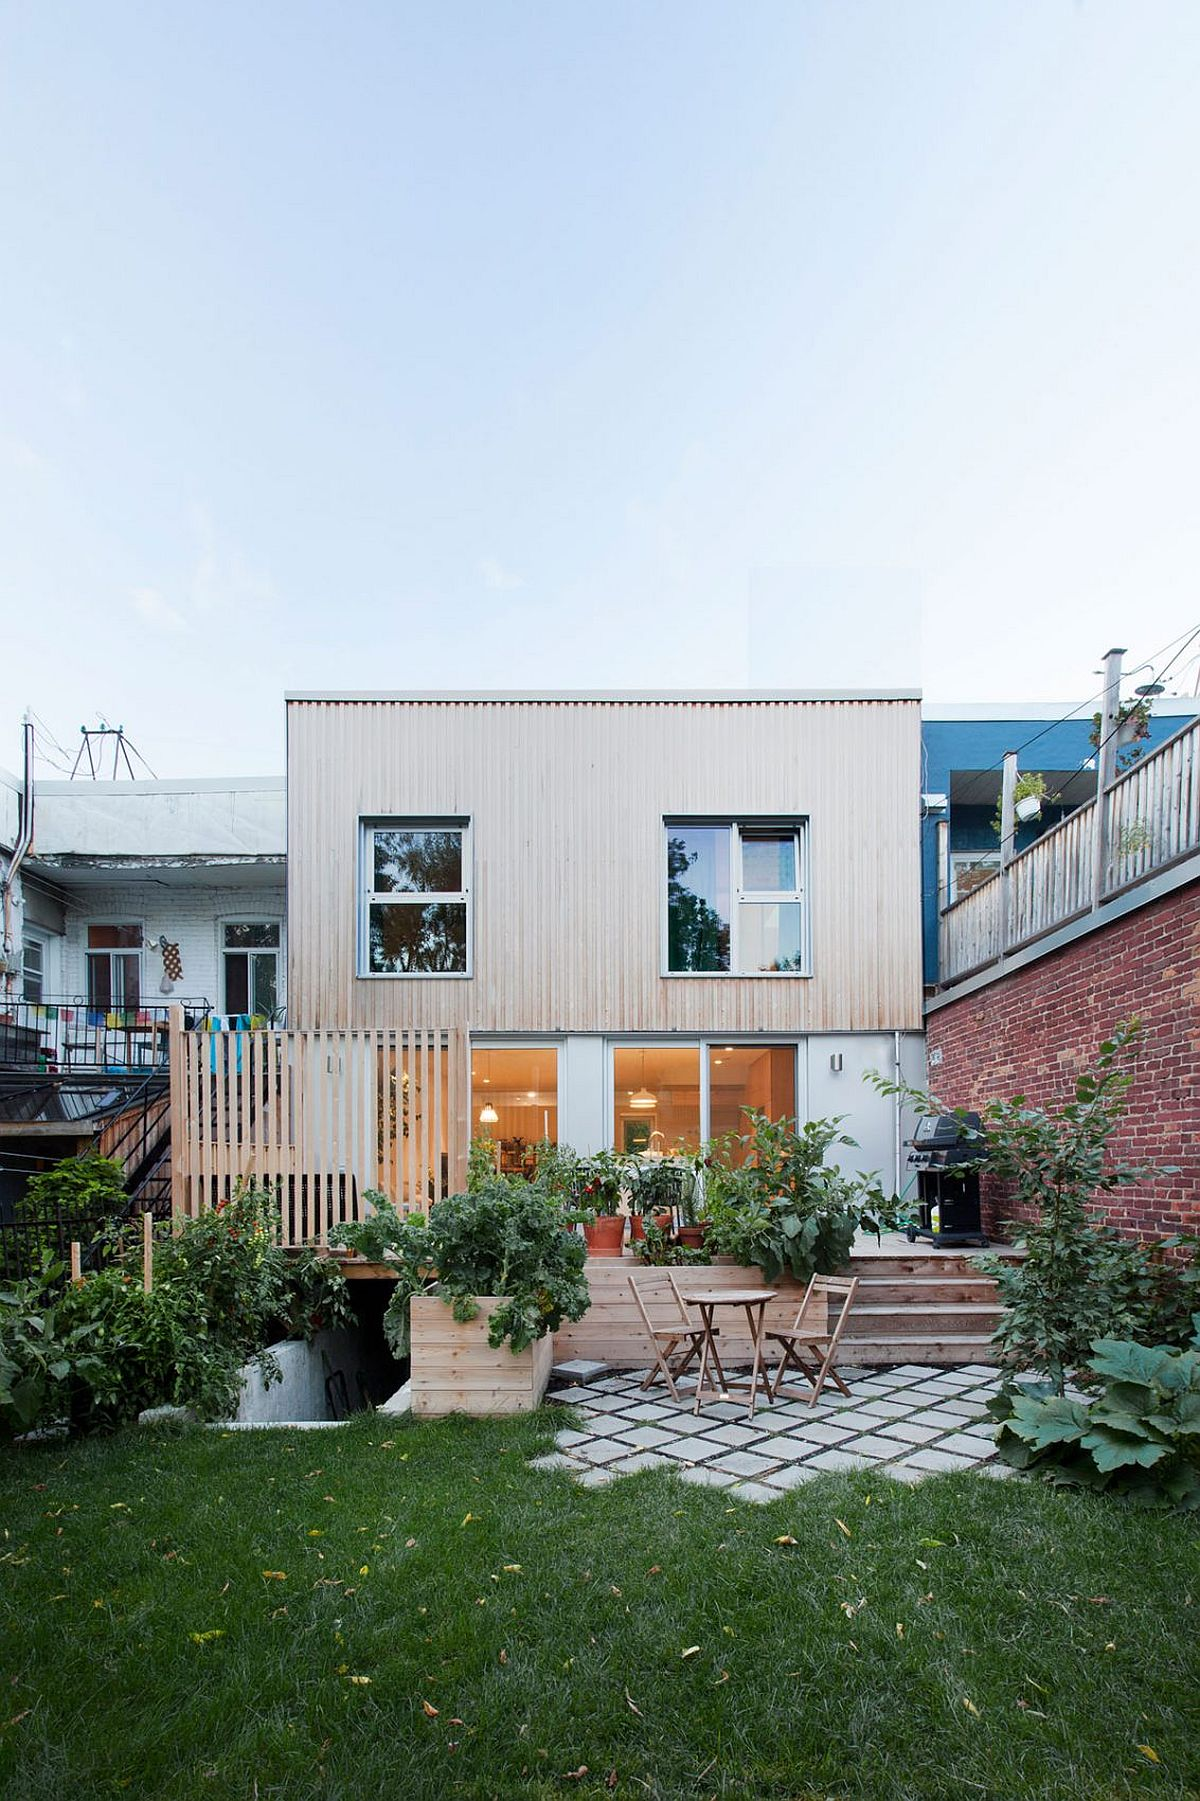 New wooden deck and outdoor living zone of the revamped home in Montreal